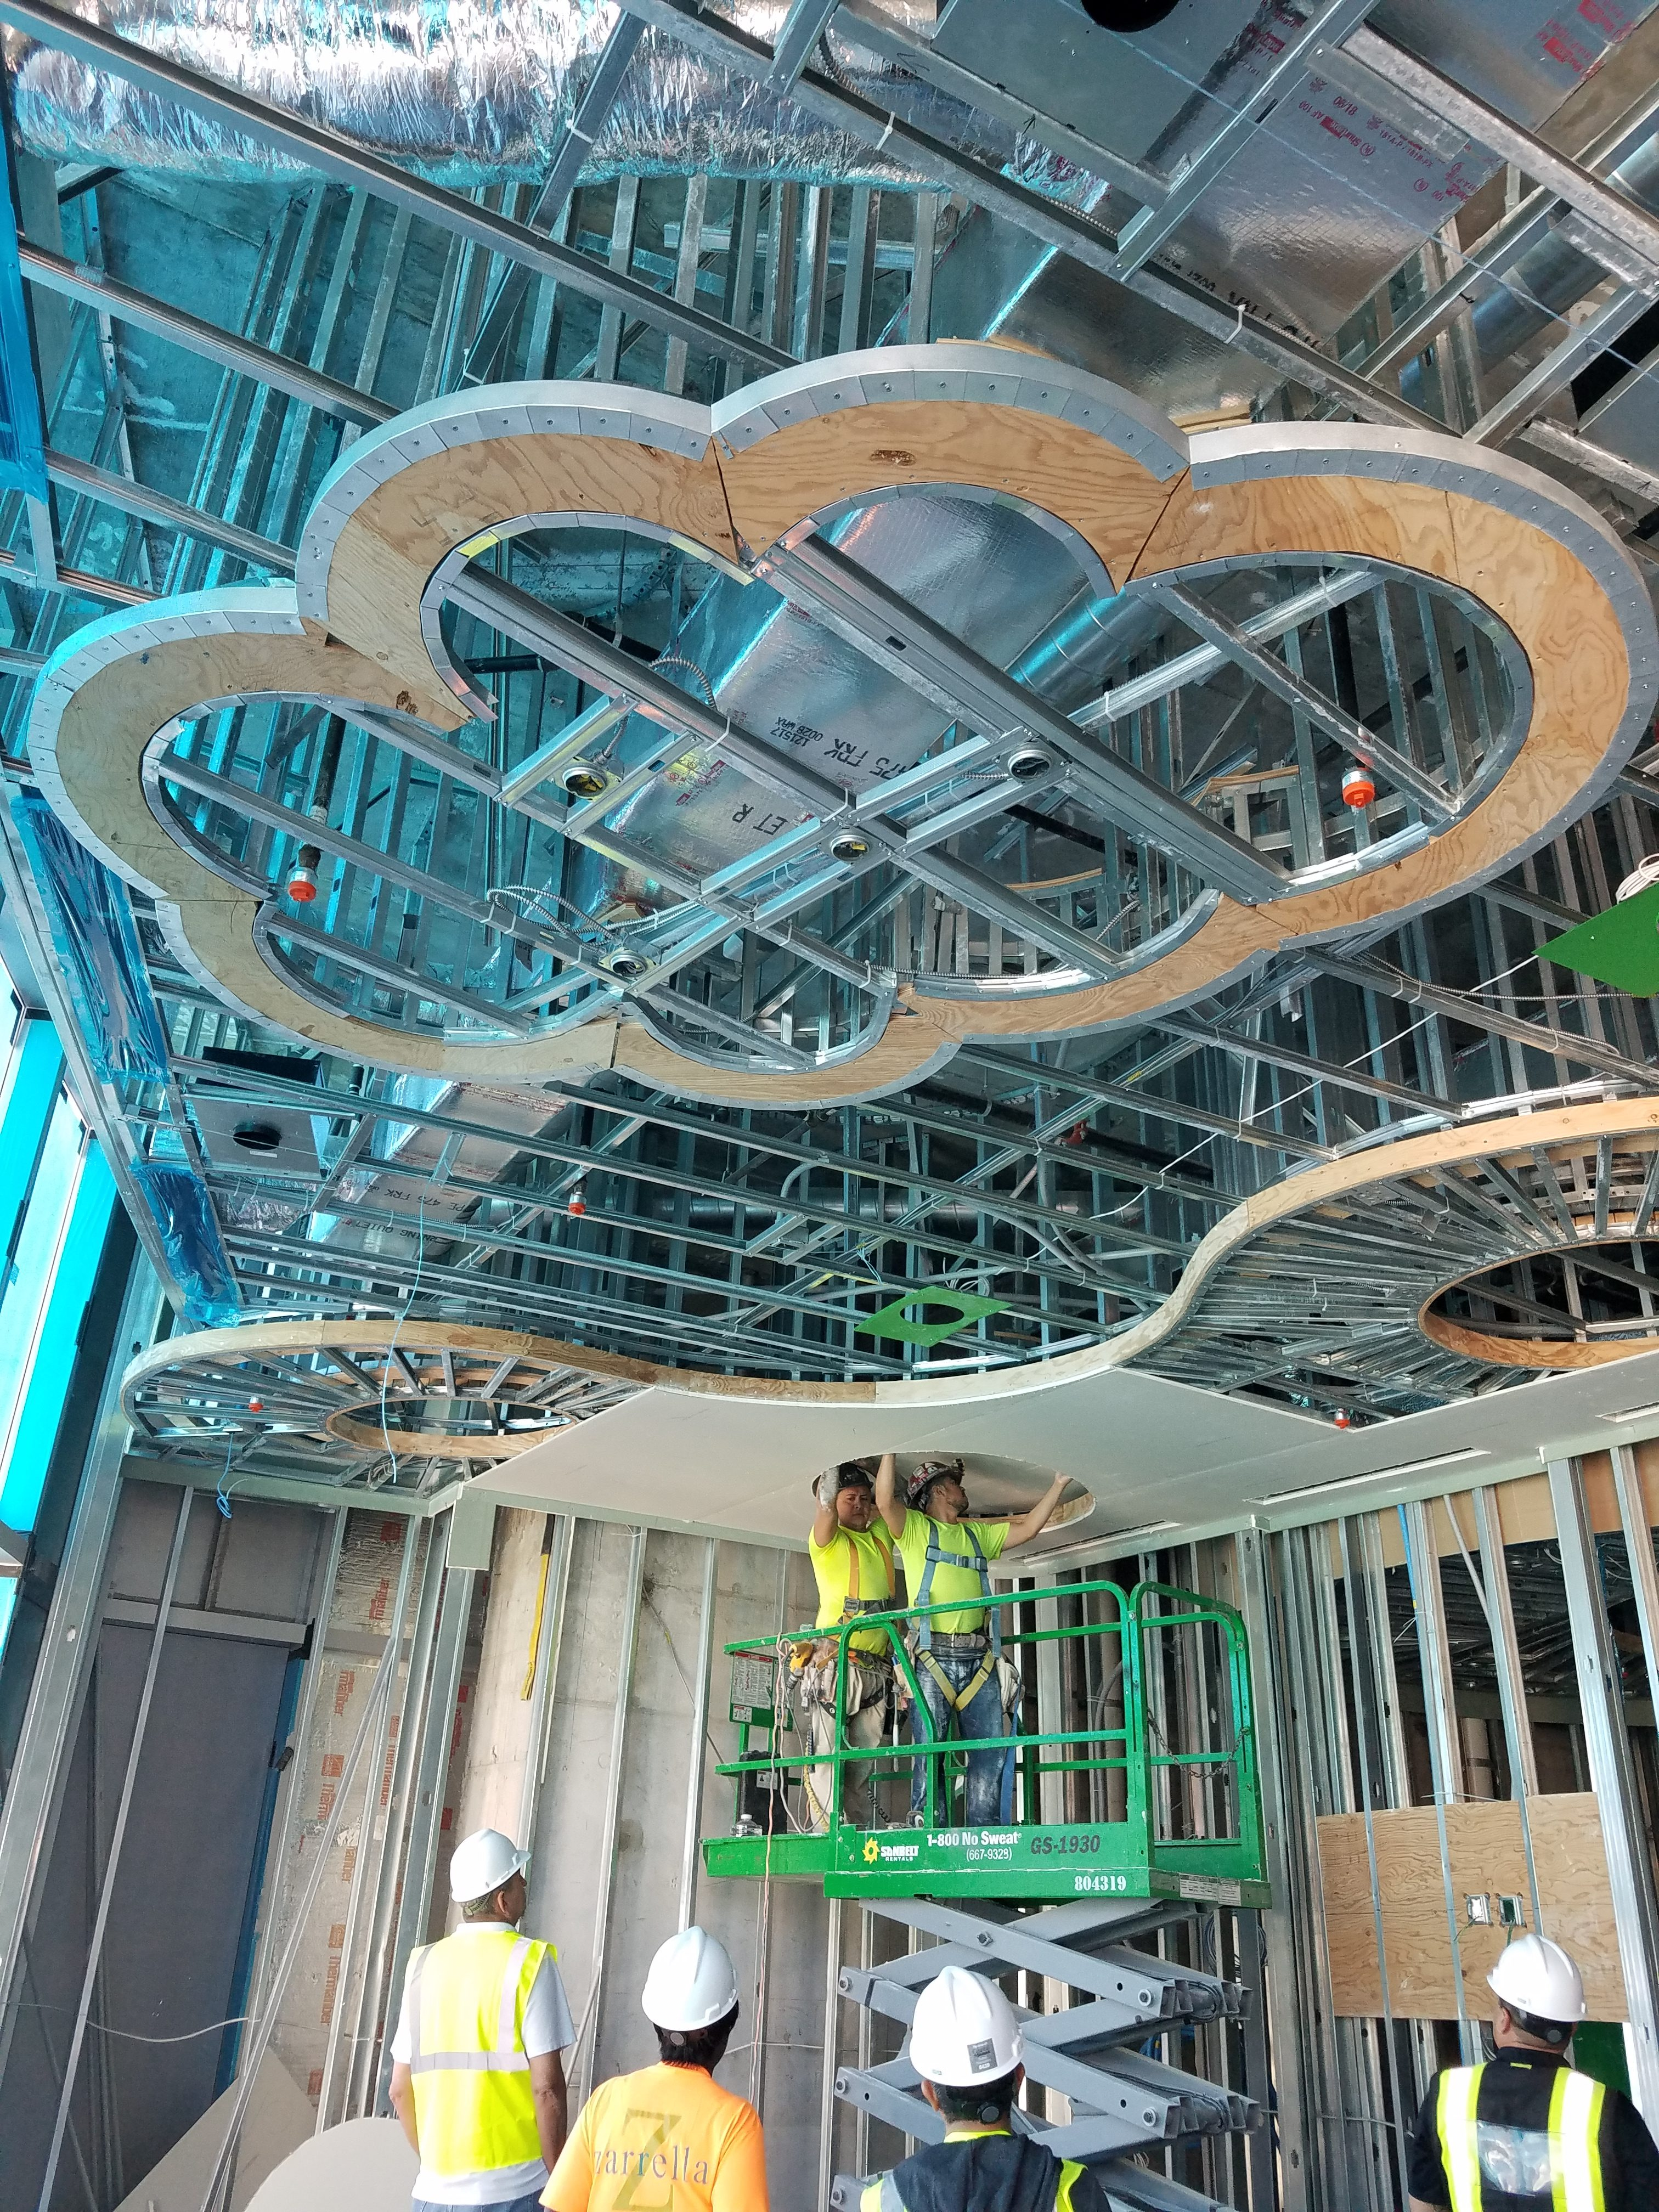 paramount ceiling 7th floor placing tiles